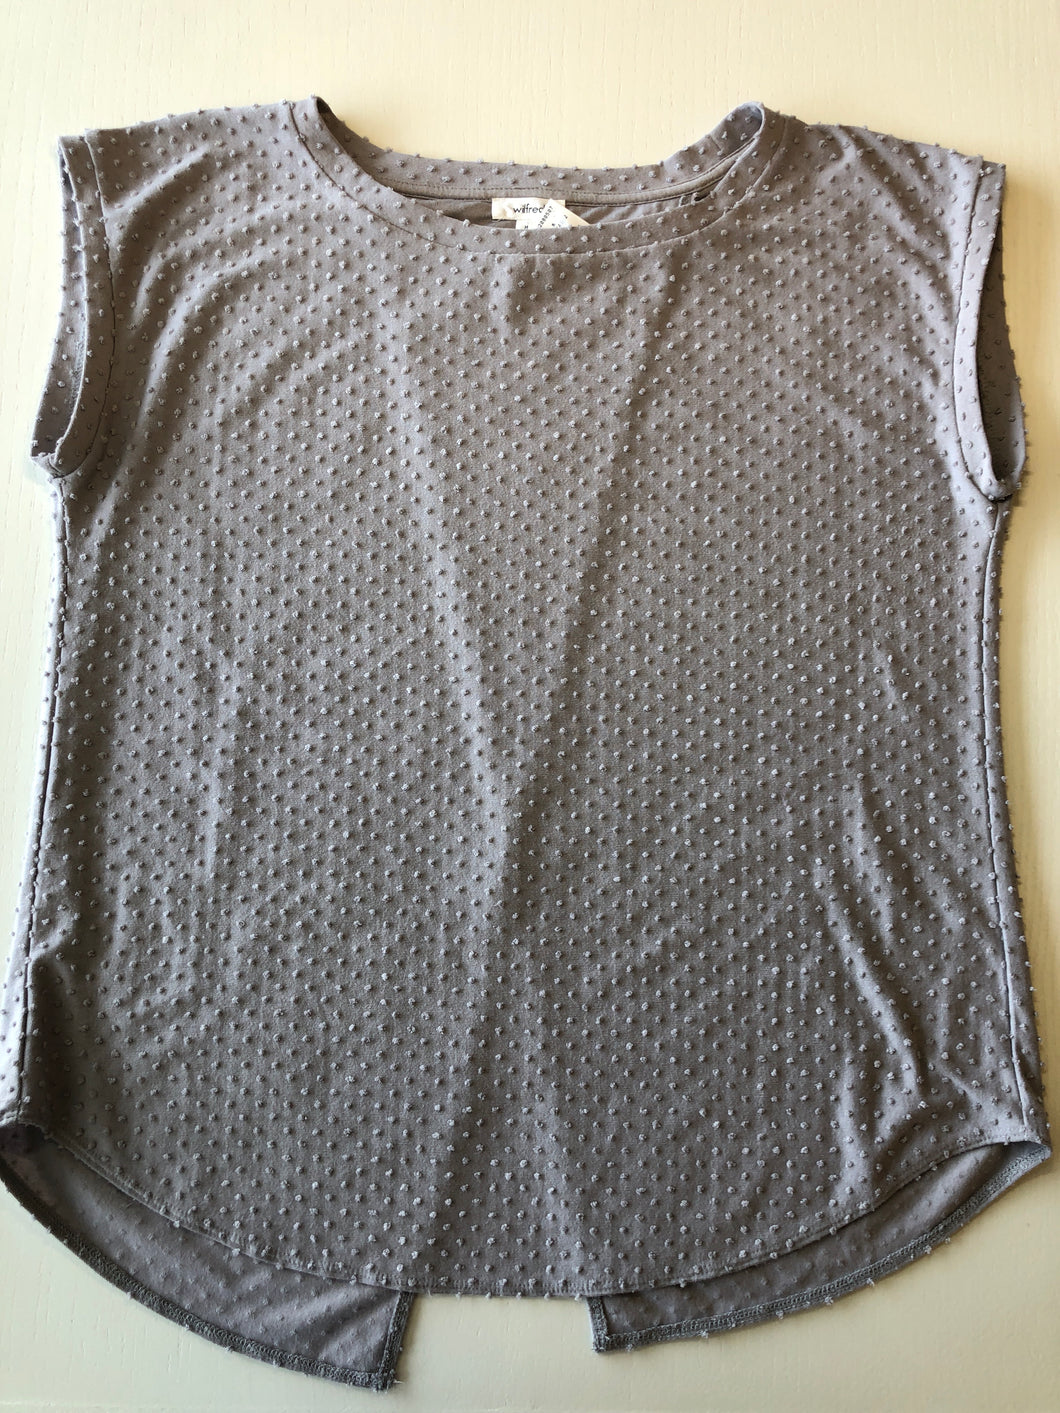 Gently Used Women's Wilfred Top Size M